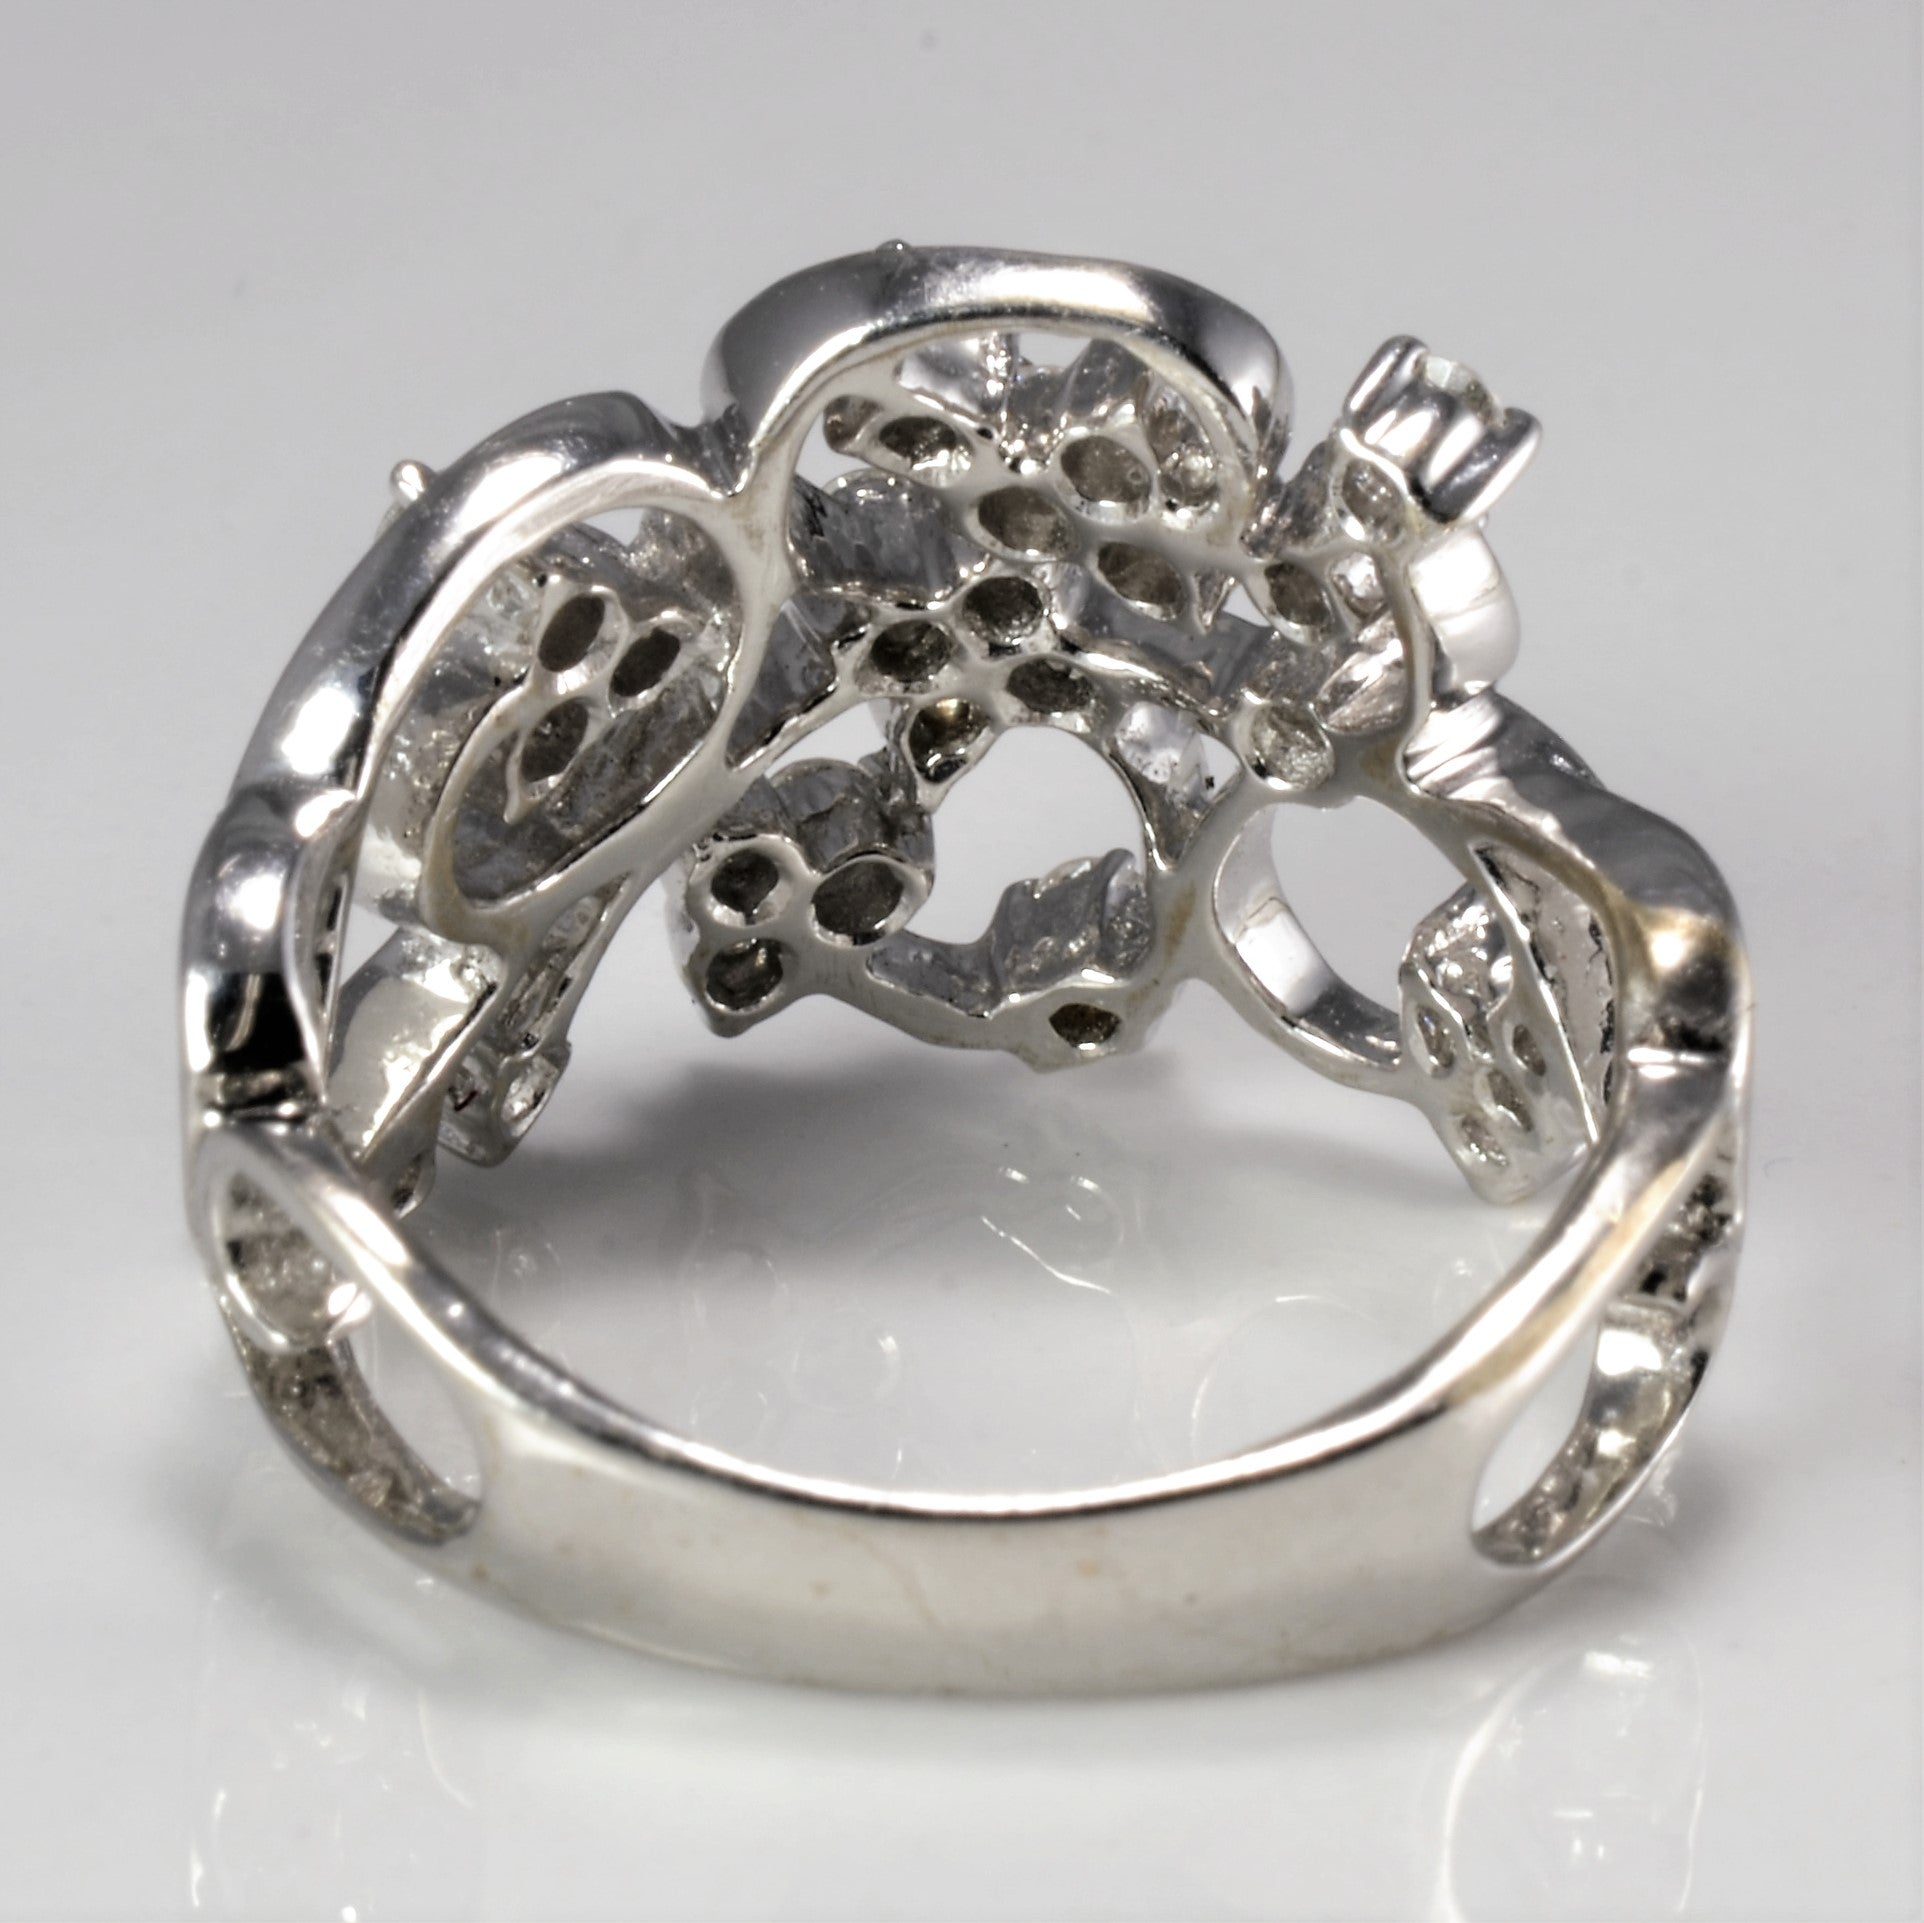 Floral Inspired Multi- Diamond Wide Ring | 0.60 ctw, SZ 6.75 |